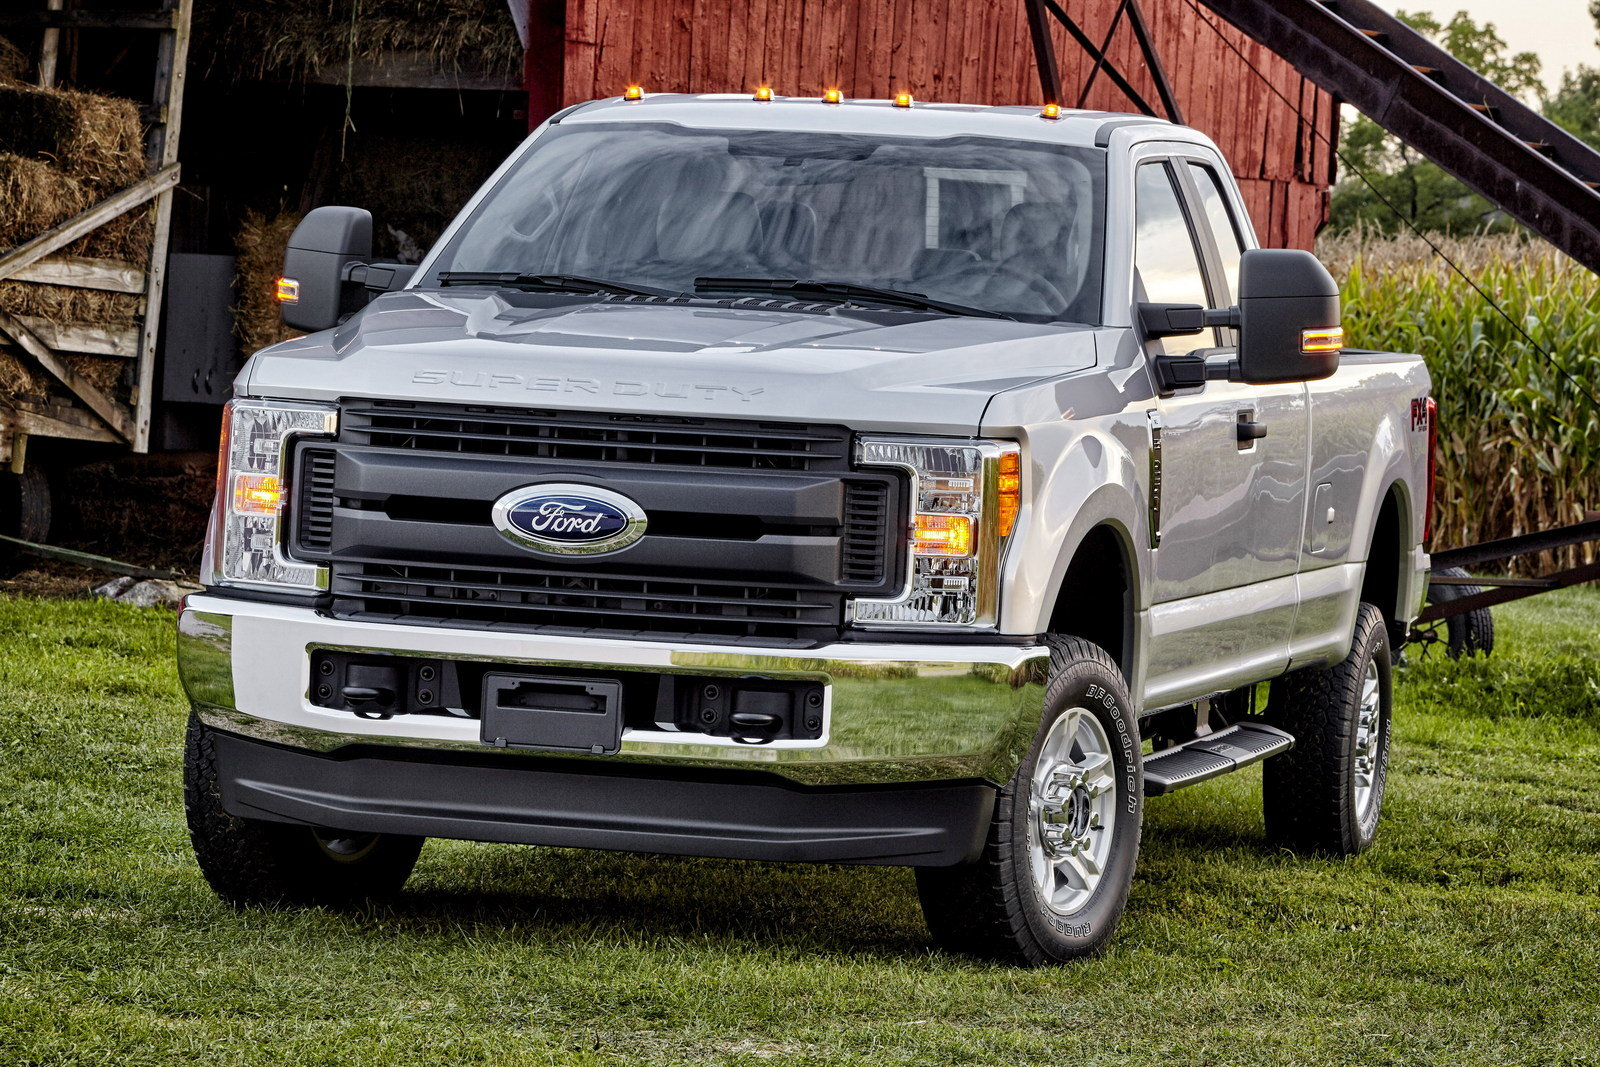 2017 ford super duty picture 648403 truck review top speed. Black Bedroom Furniture Sets. Home Design Ideas